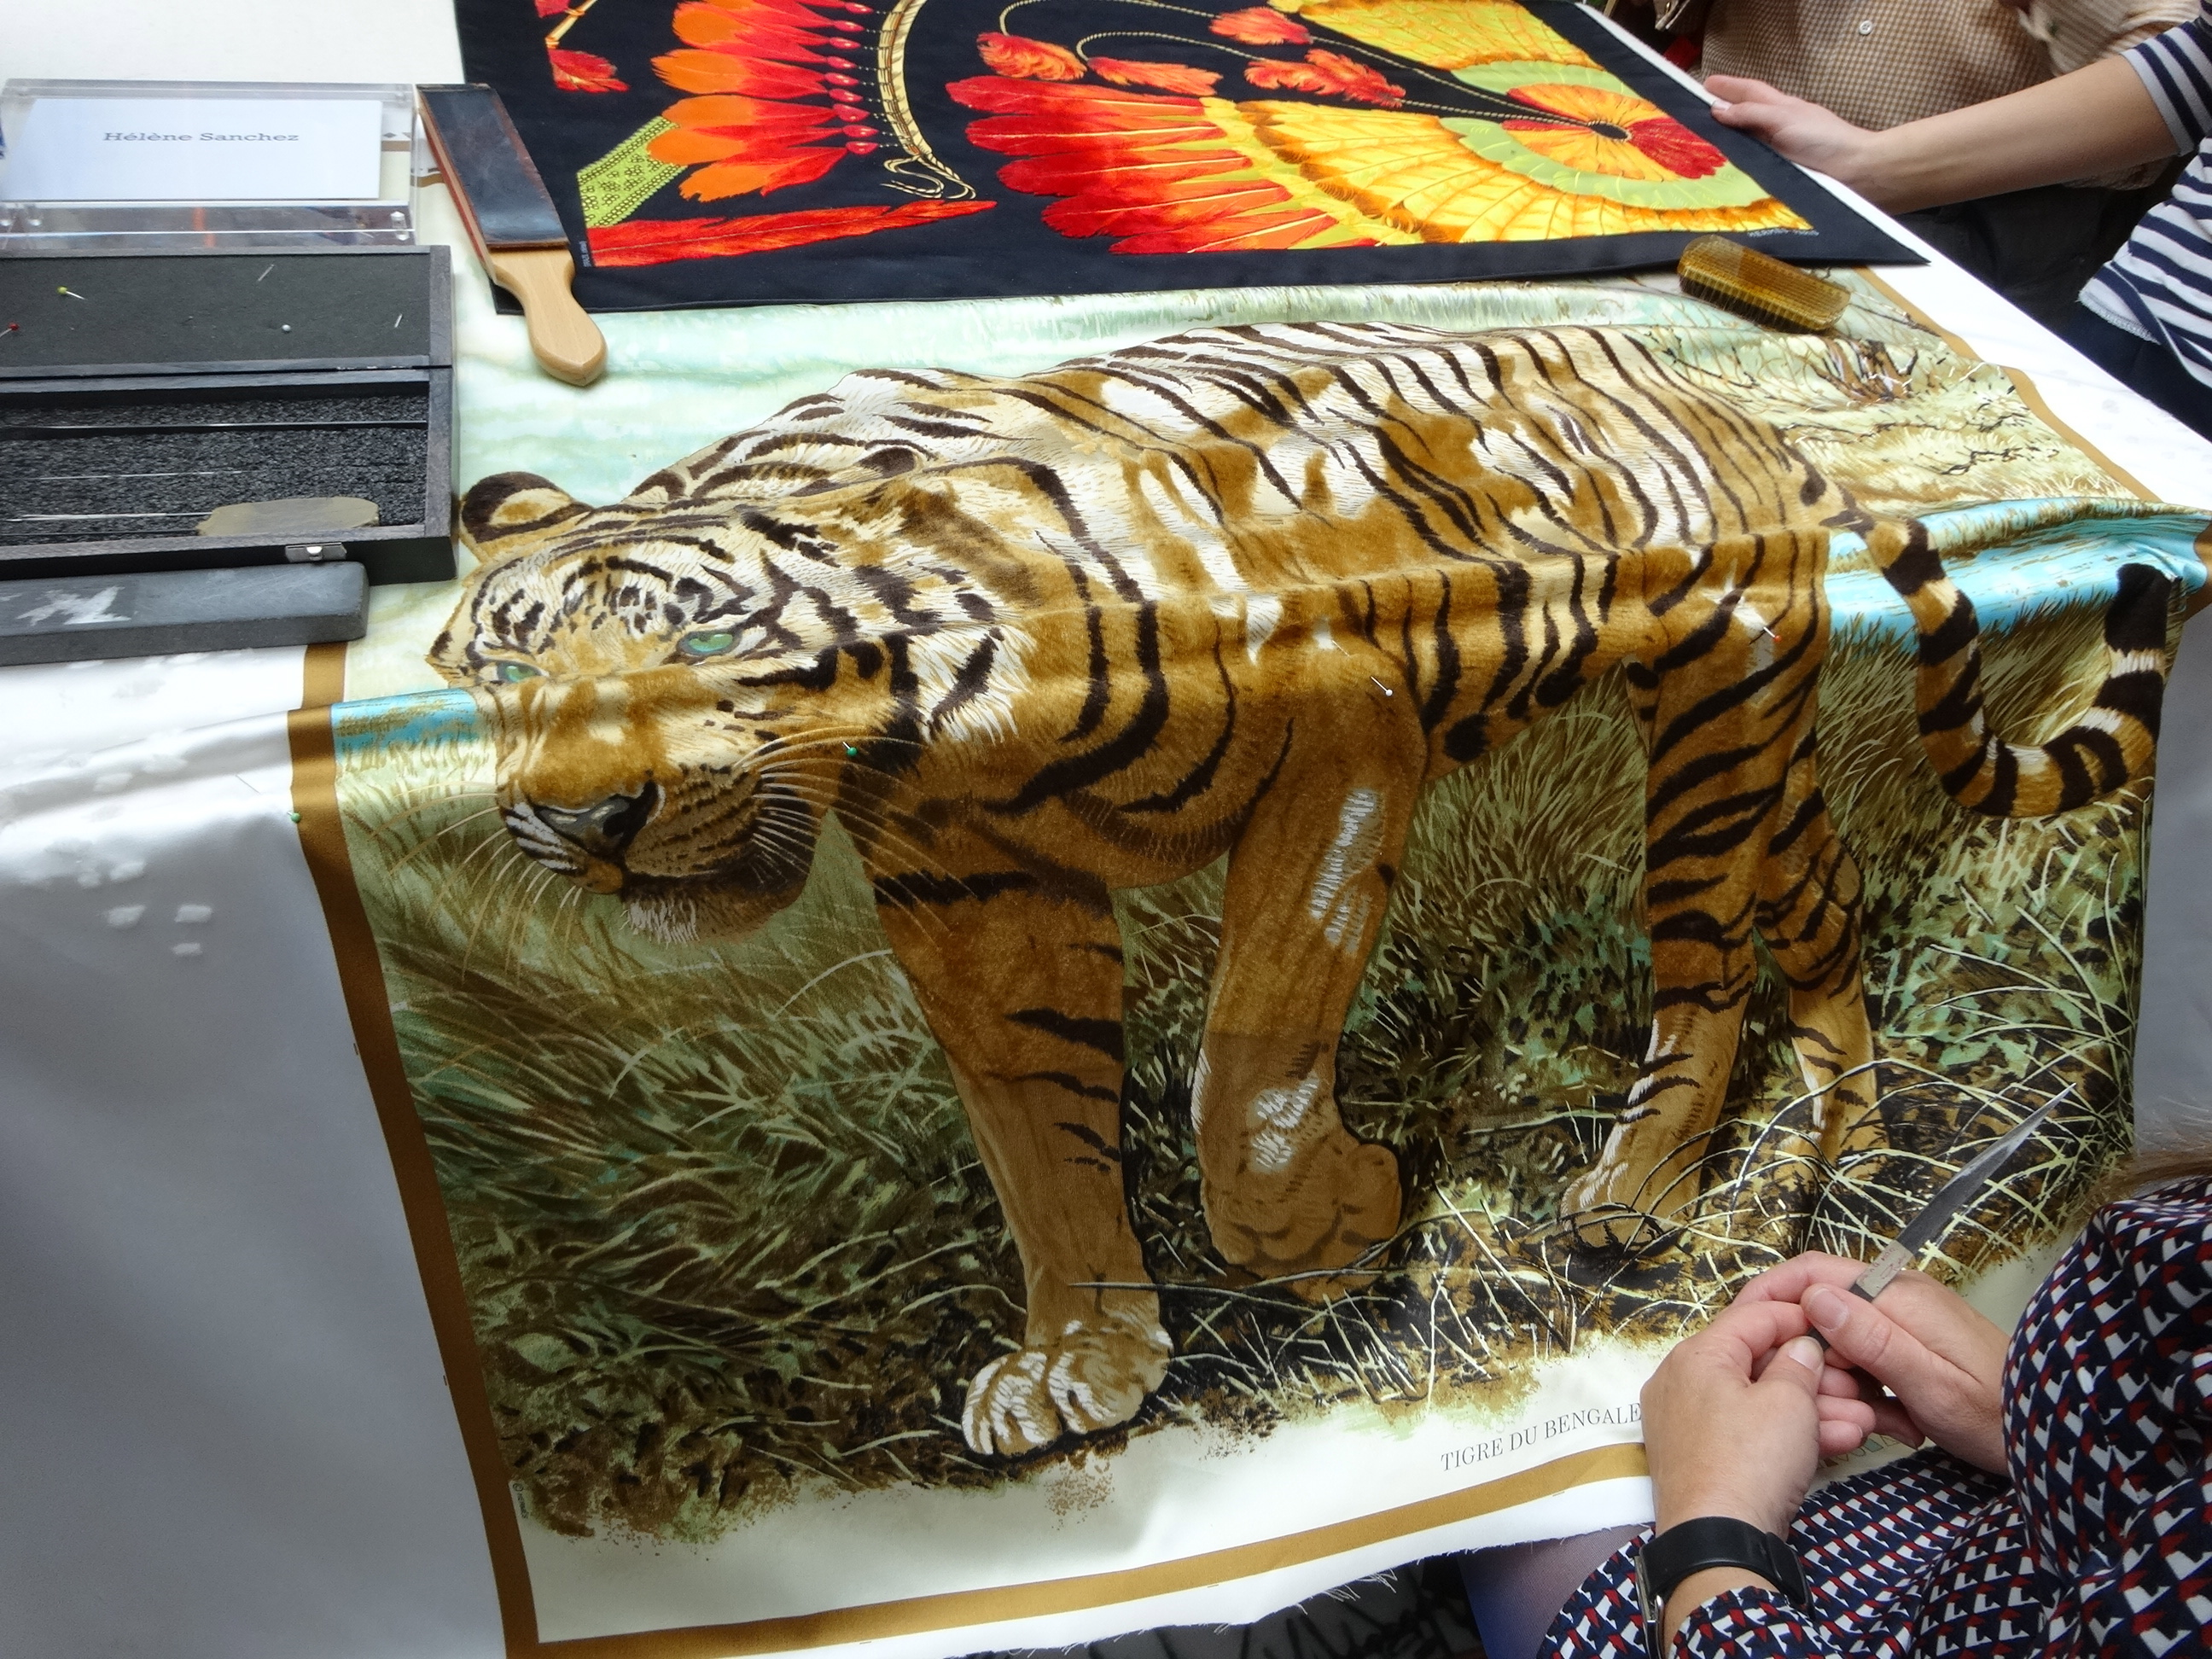 Hermès Sabrage - a tiger coming to life